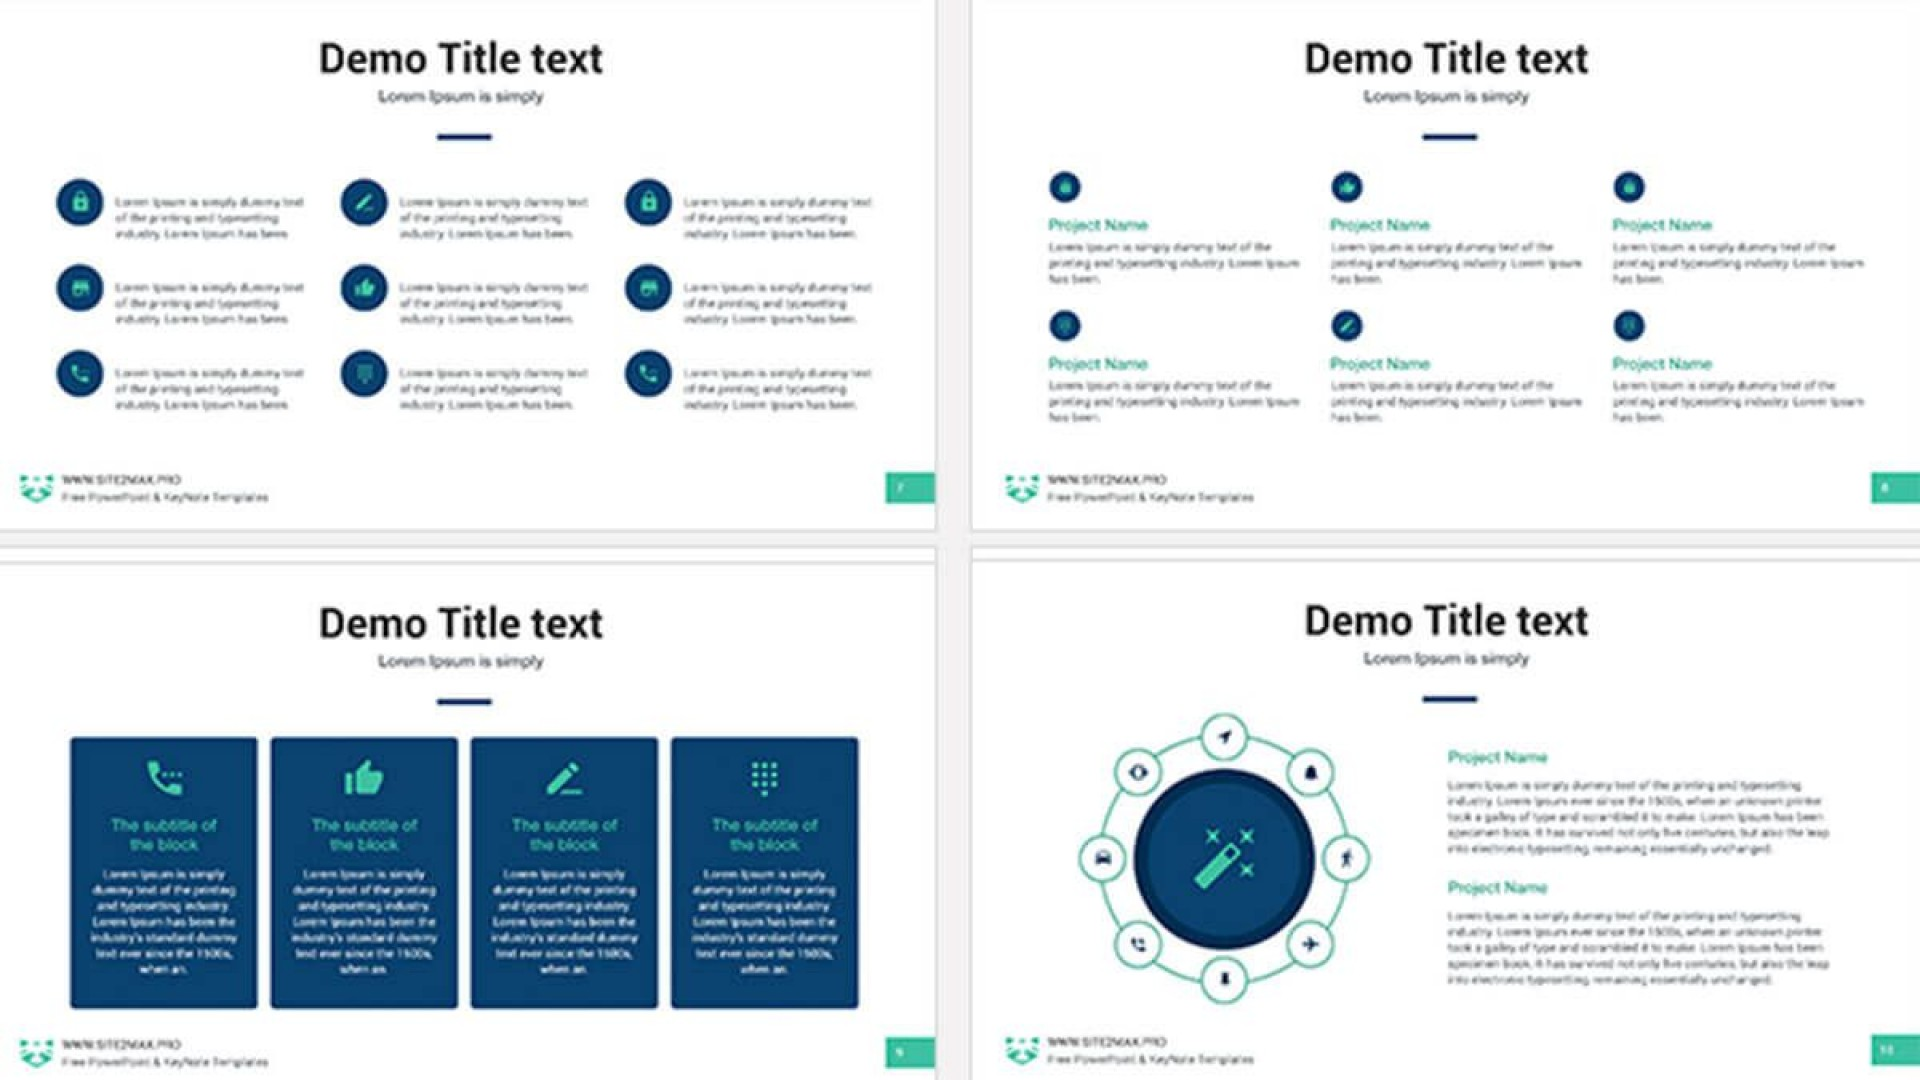 006 Shocking Strategic Planning Ppt Template Free High Resolution  5 Year Plan One Page Account1920